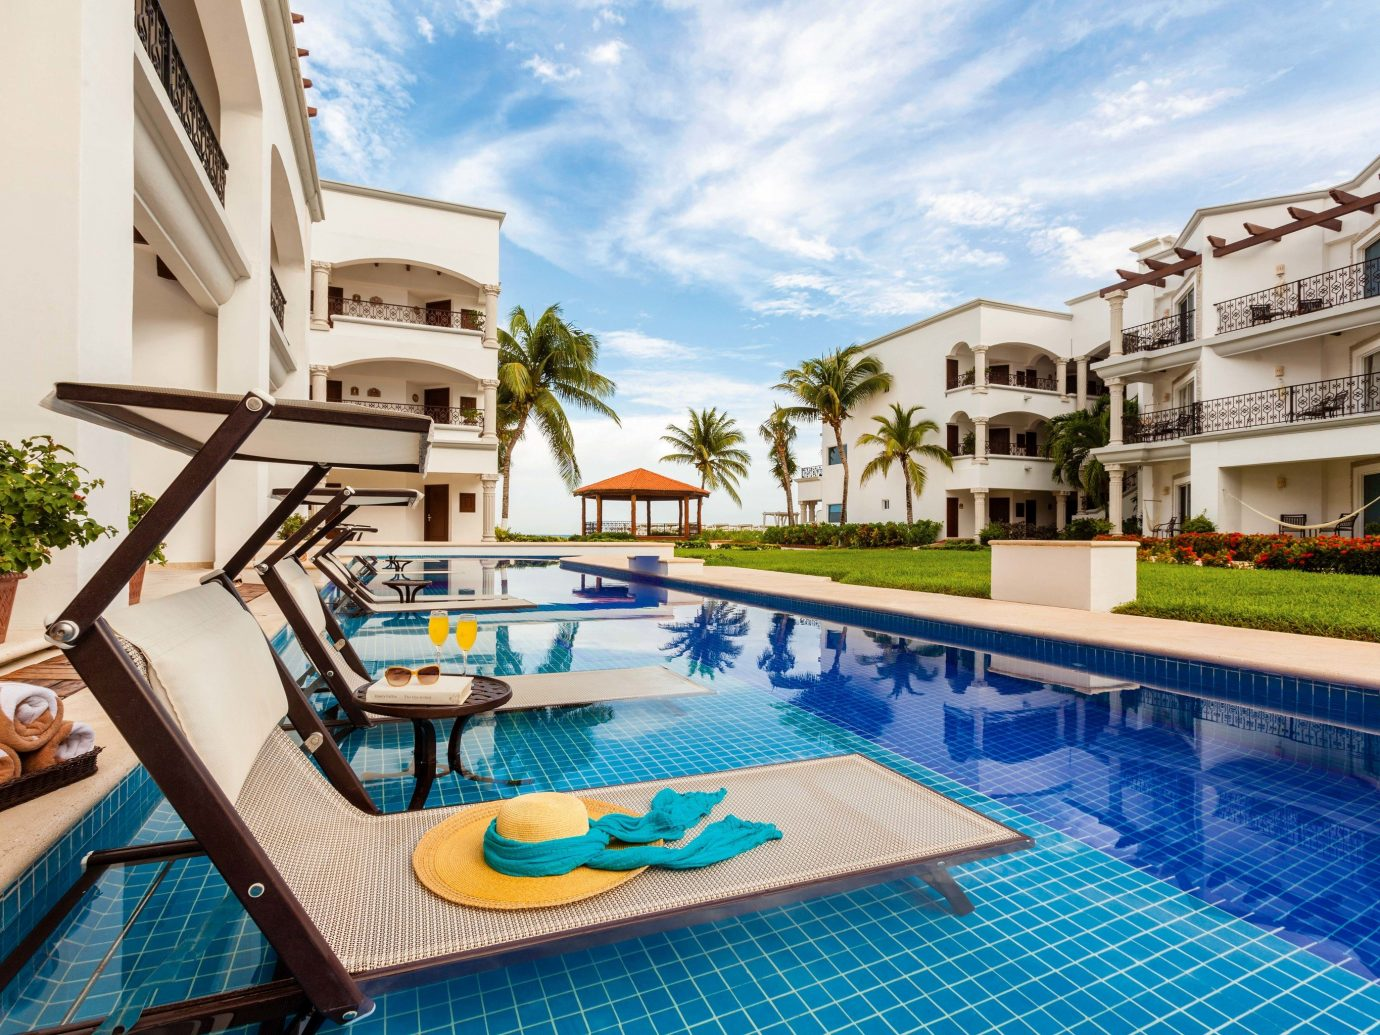 All-inclusive All-Inclusive Resorts Mexico Riviera Maya, Mexico property Resort swimming pool leisure estate real estate Villa condominium apartment vacation hotel home hacienda resort town penthouse apartment building